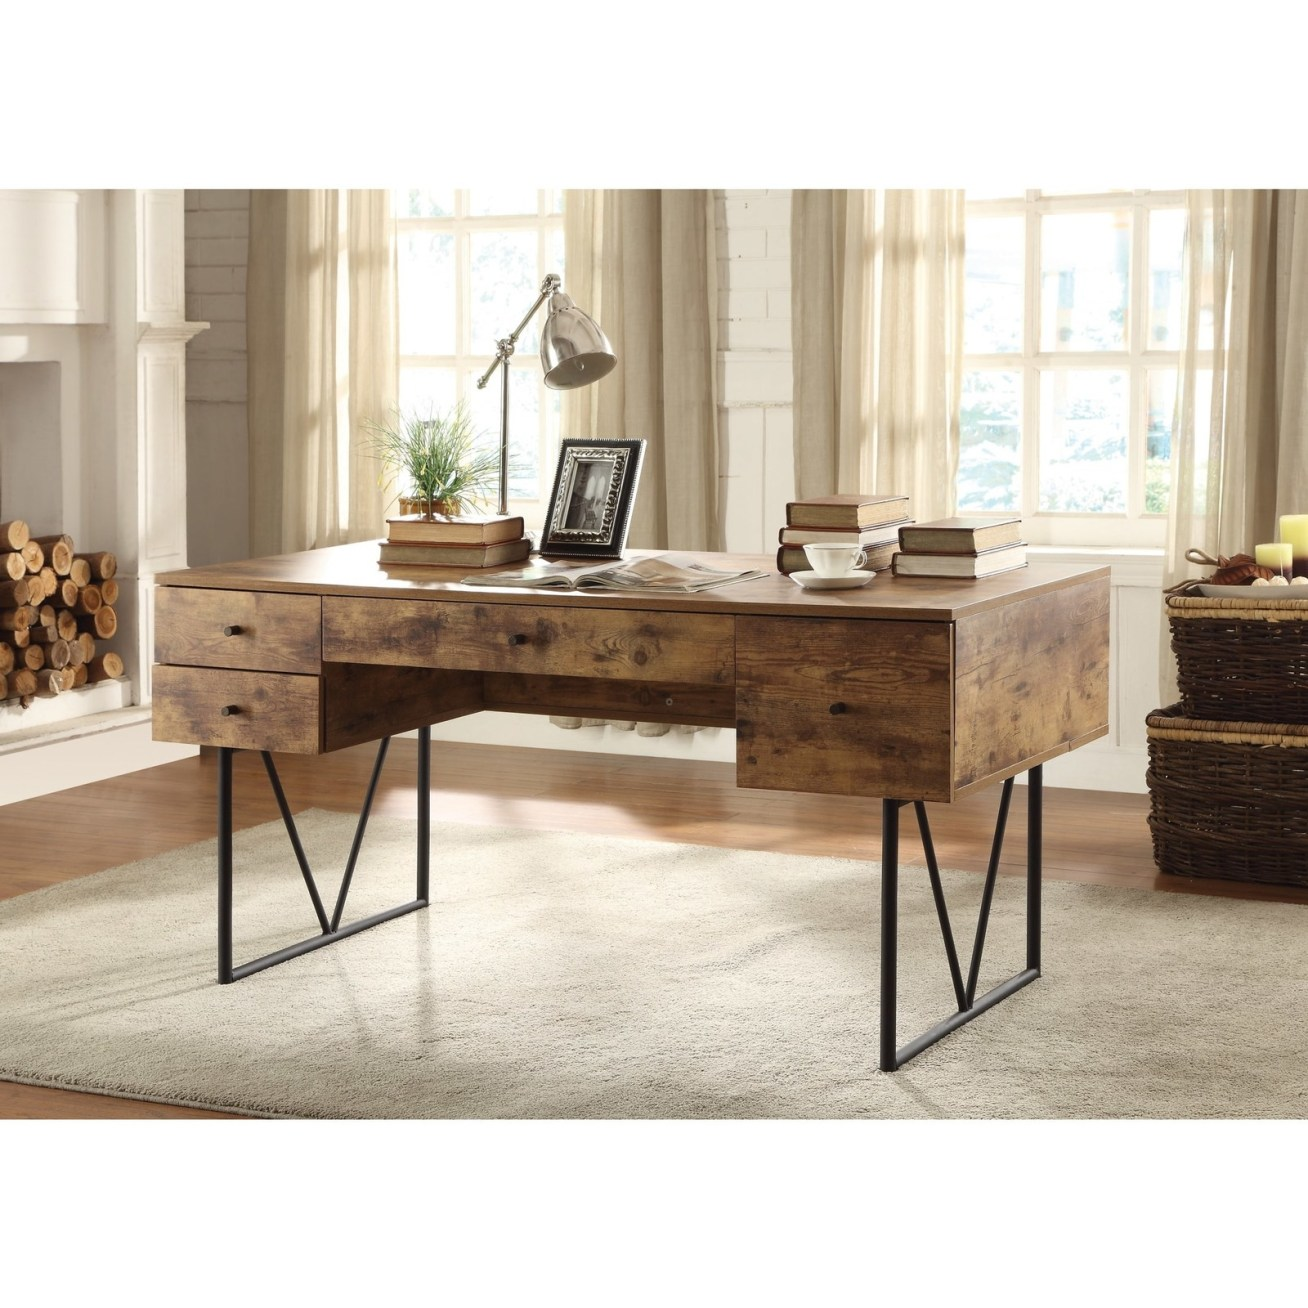 "Promising review: ""Beautiful! This desk looks just like the reclaimed wooden ones selling for over 00. VERY large in person and quite heavy, but definitely worth it. My husband has desk envy and is returning his desk and purchasing this one instead! Feels like a very high quality desk (definitely a steal for the quality)."" —AHoffman1991Price: 1.99"